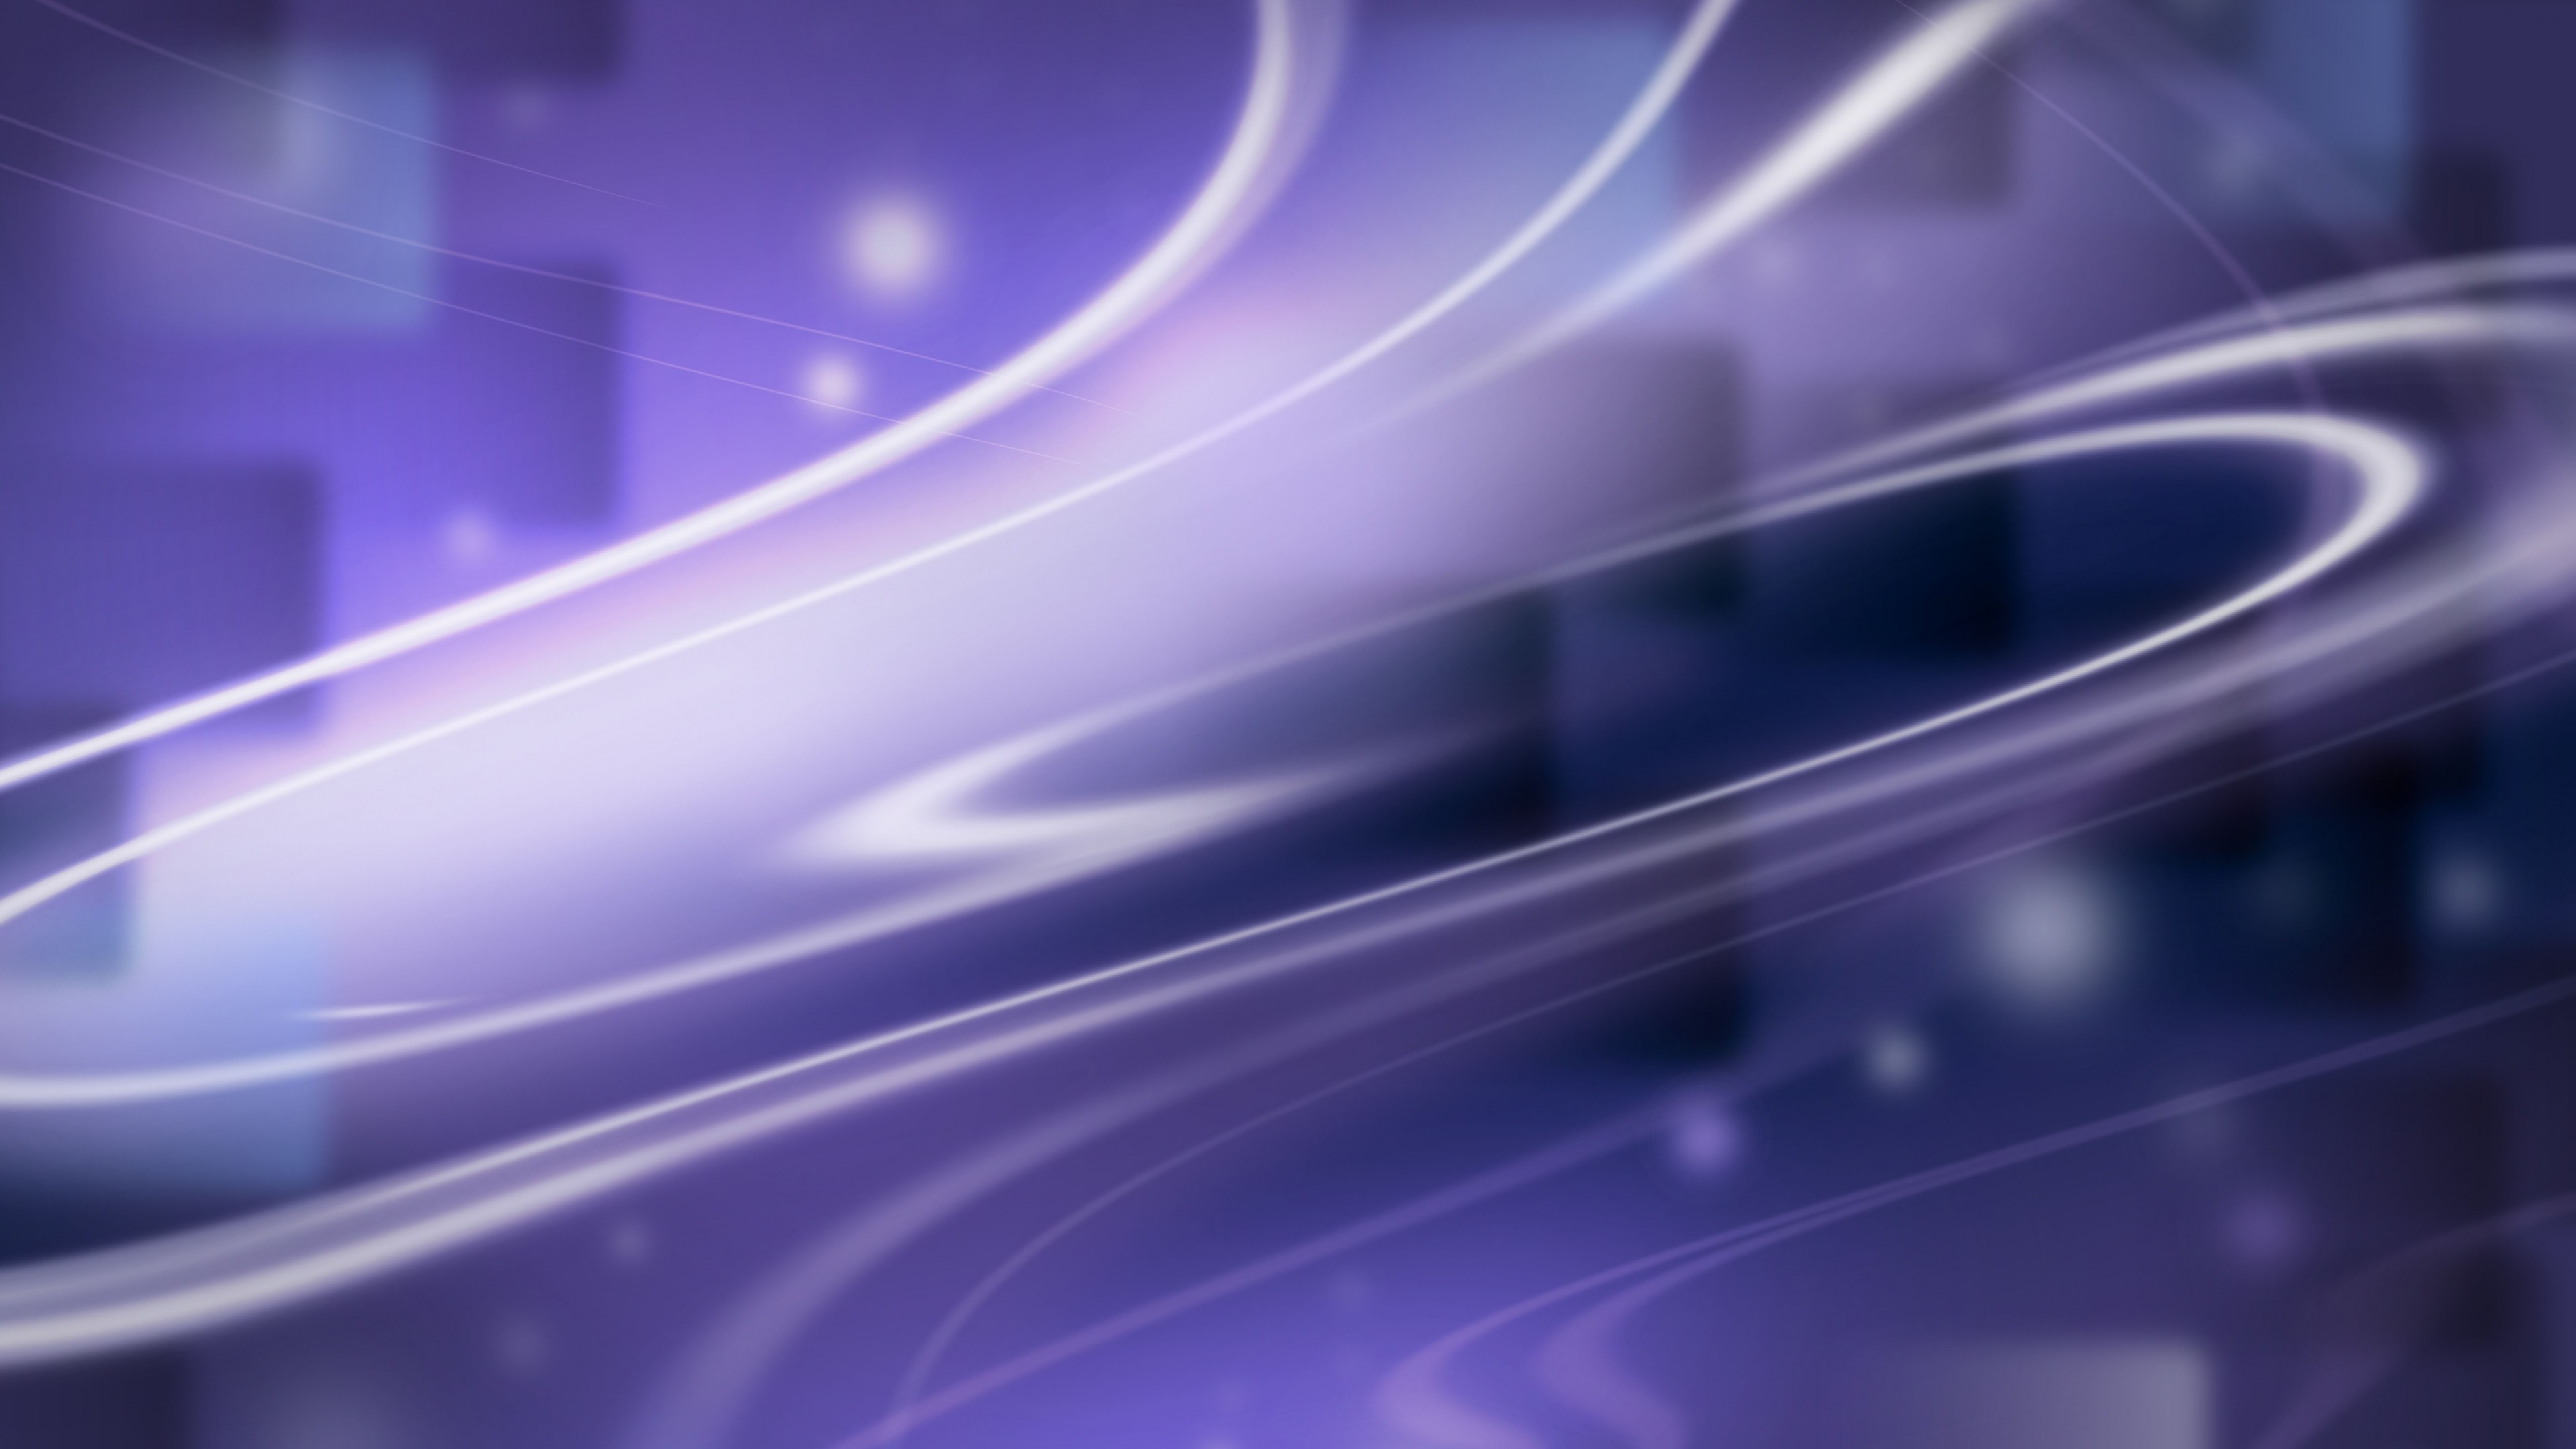 Wallpaper abstract, purple, white, lines